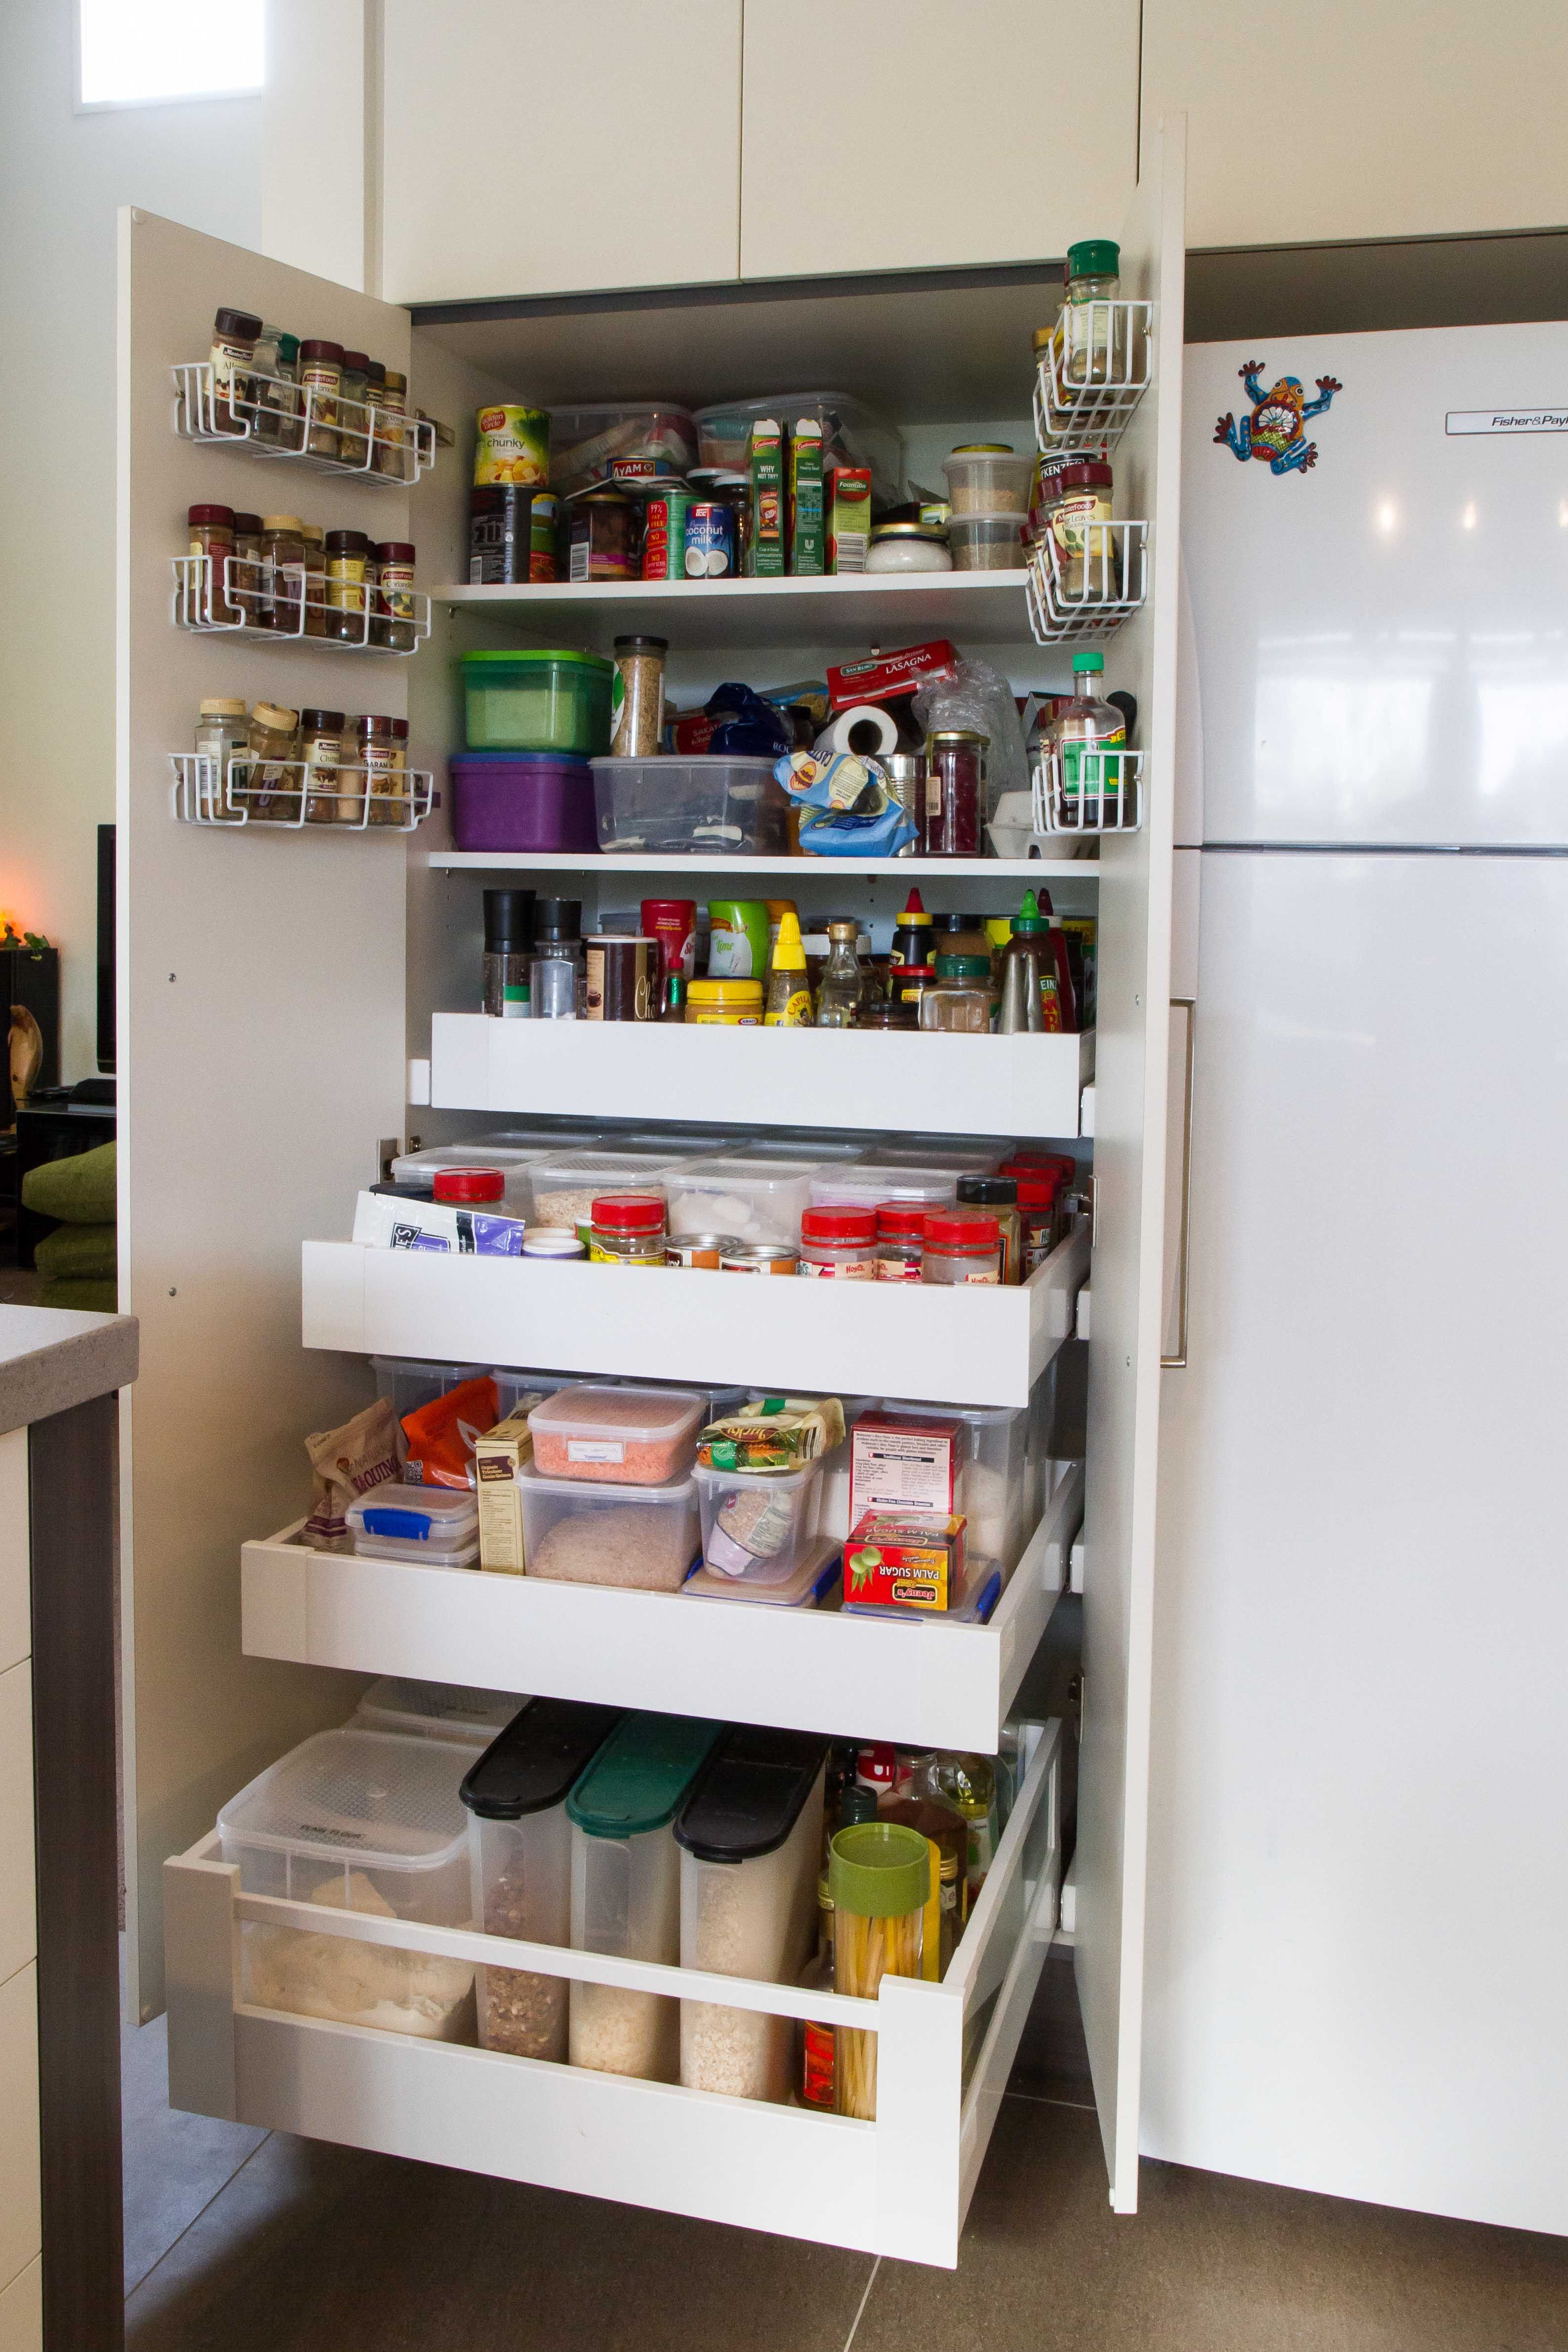 Food Storage Cabinet With Doors Briliant Pantry With Drawers And On Door Racking For Extra Storage